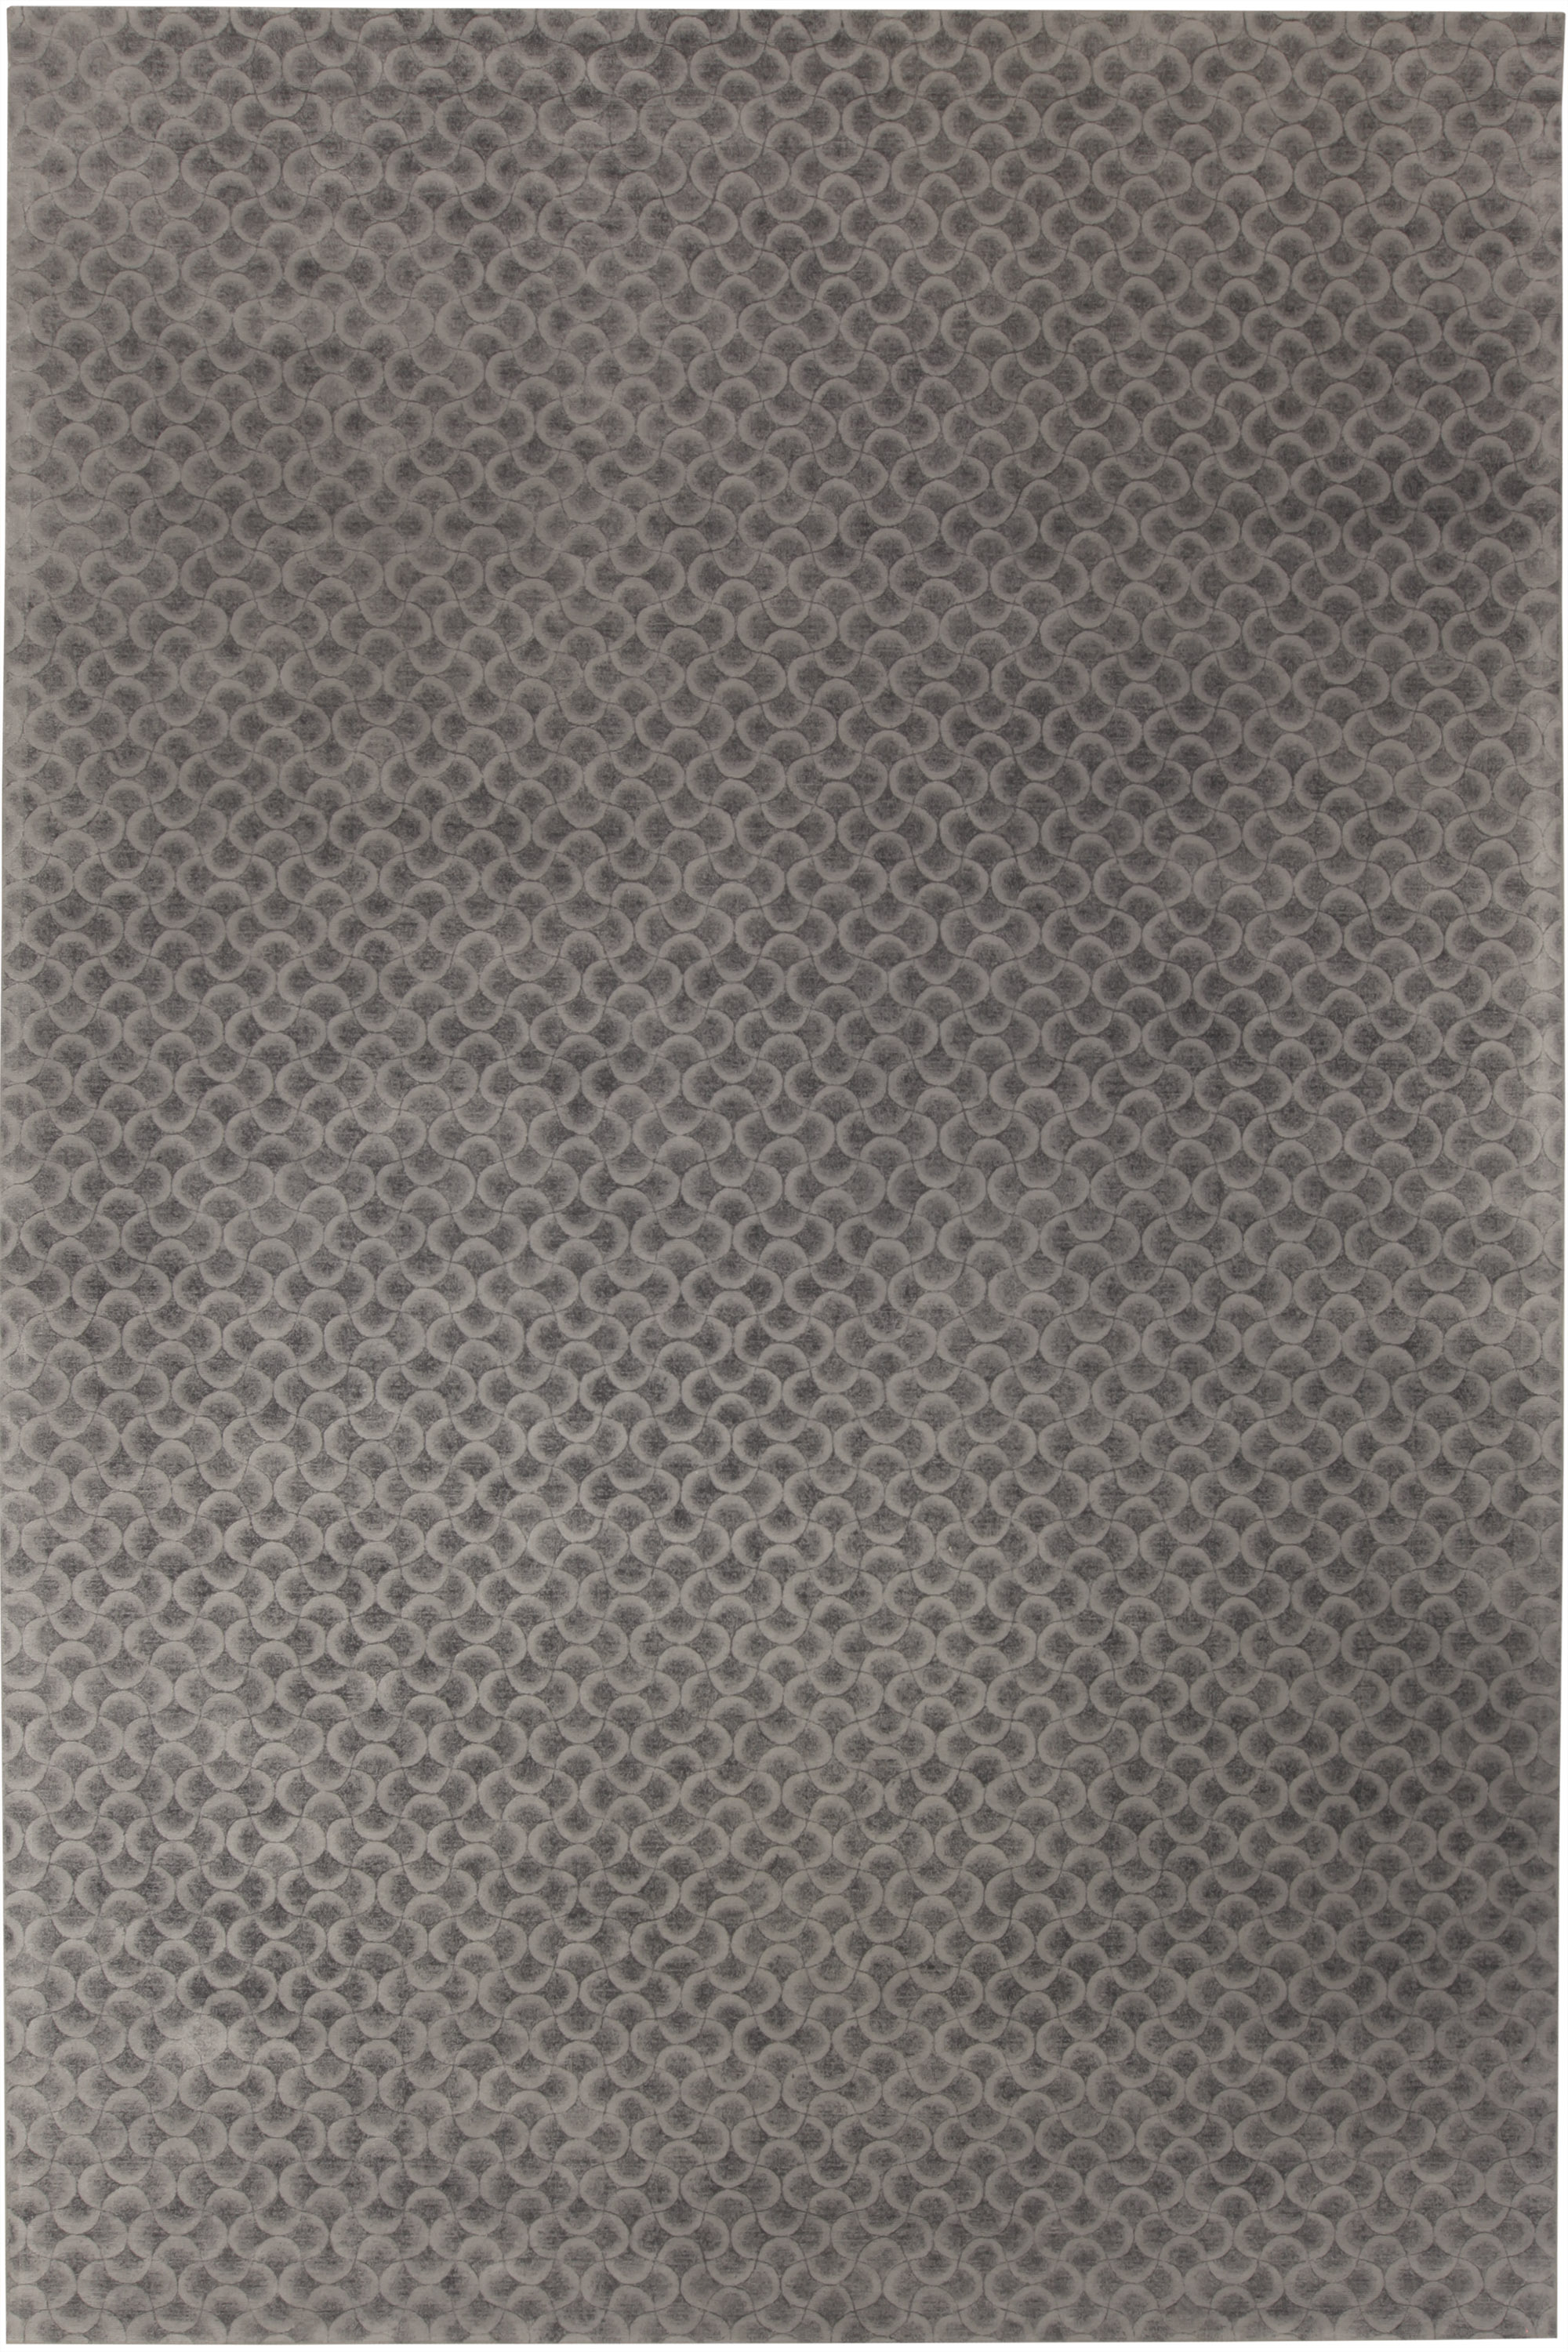 Gray Arches Rug N10737